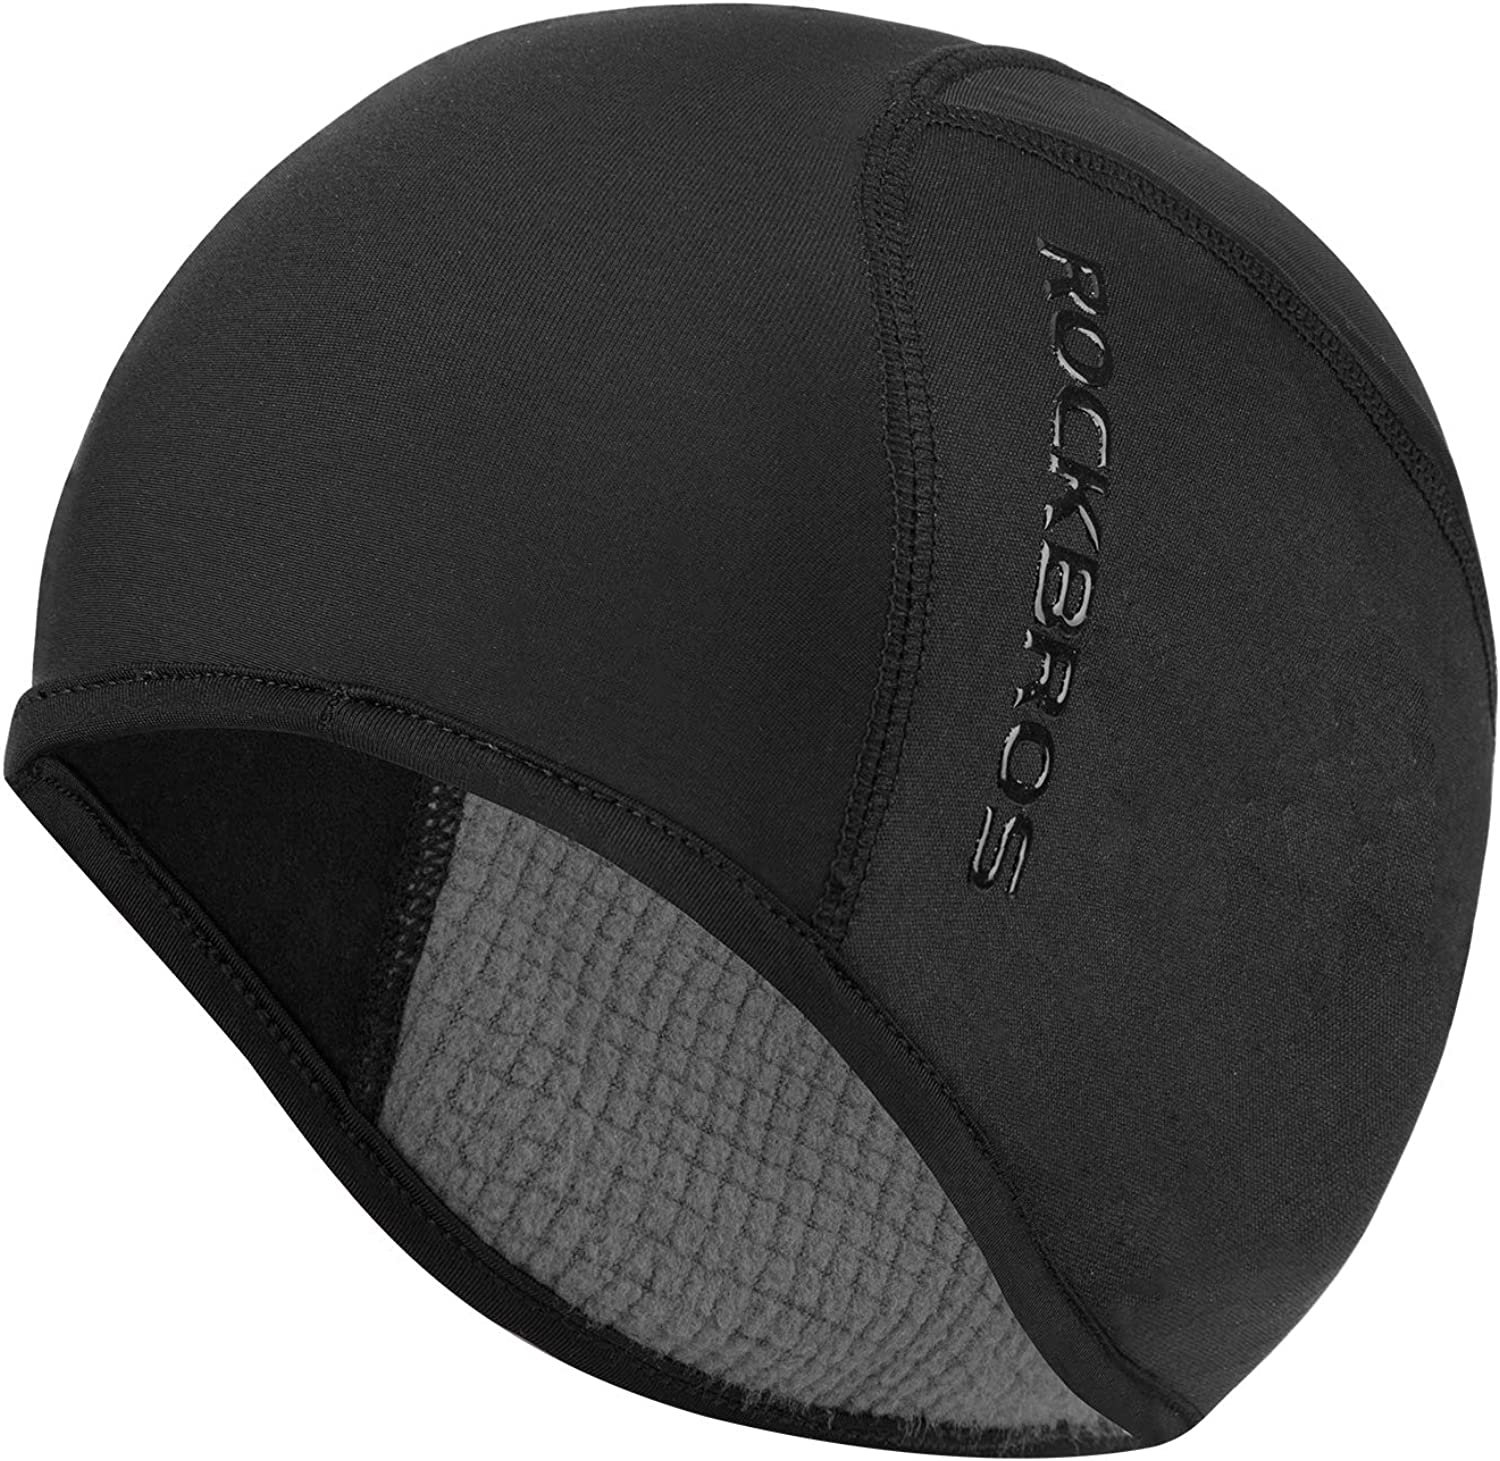 ROCKBROS Austin Mall Helmet Liner Cycling Skull Thermal Winter Cy Cap All stores are sold Fleece